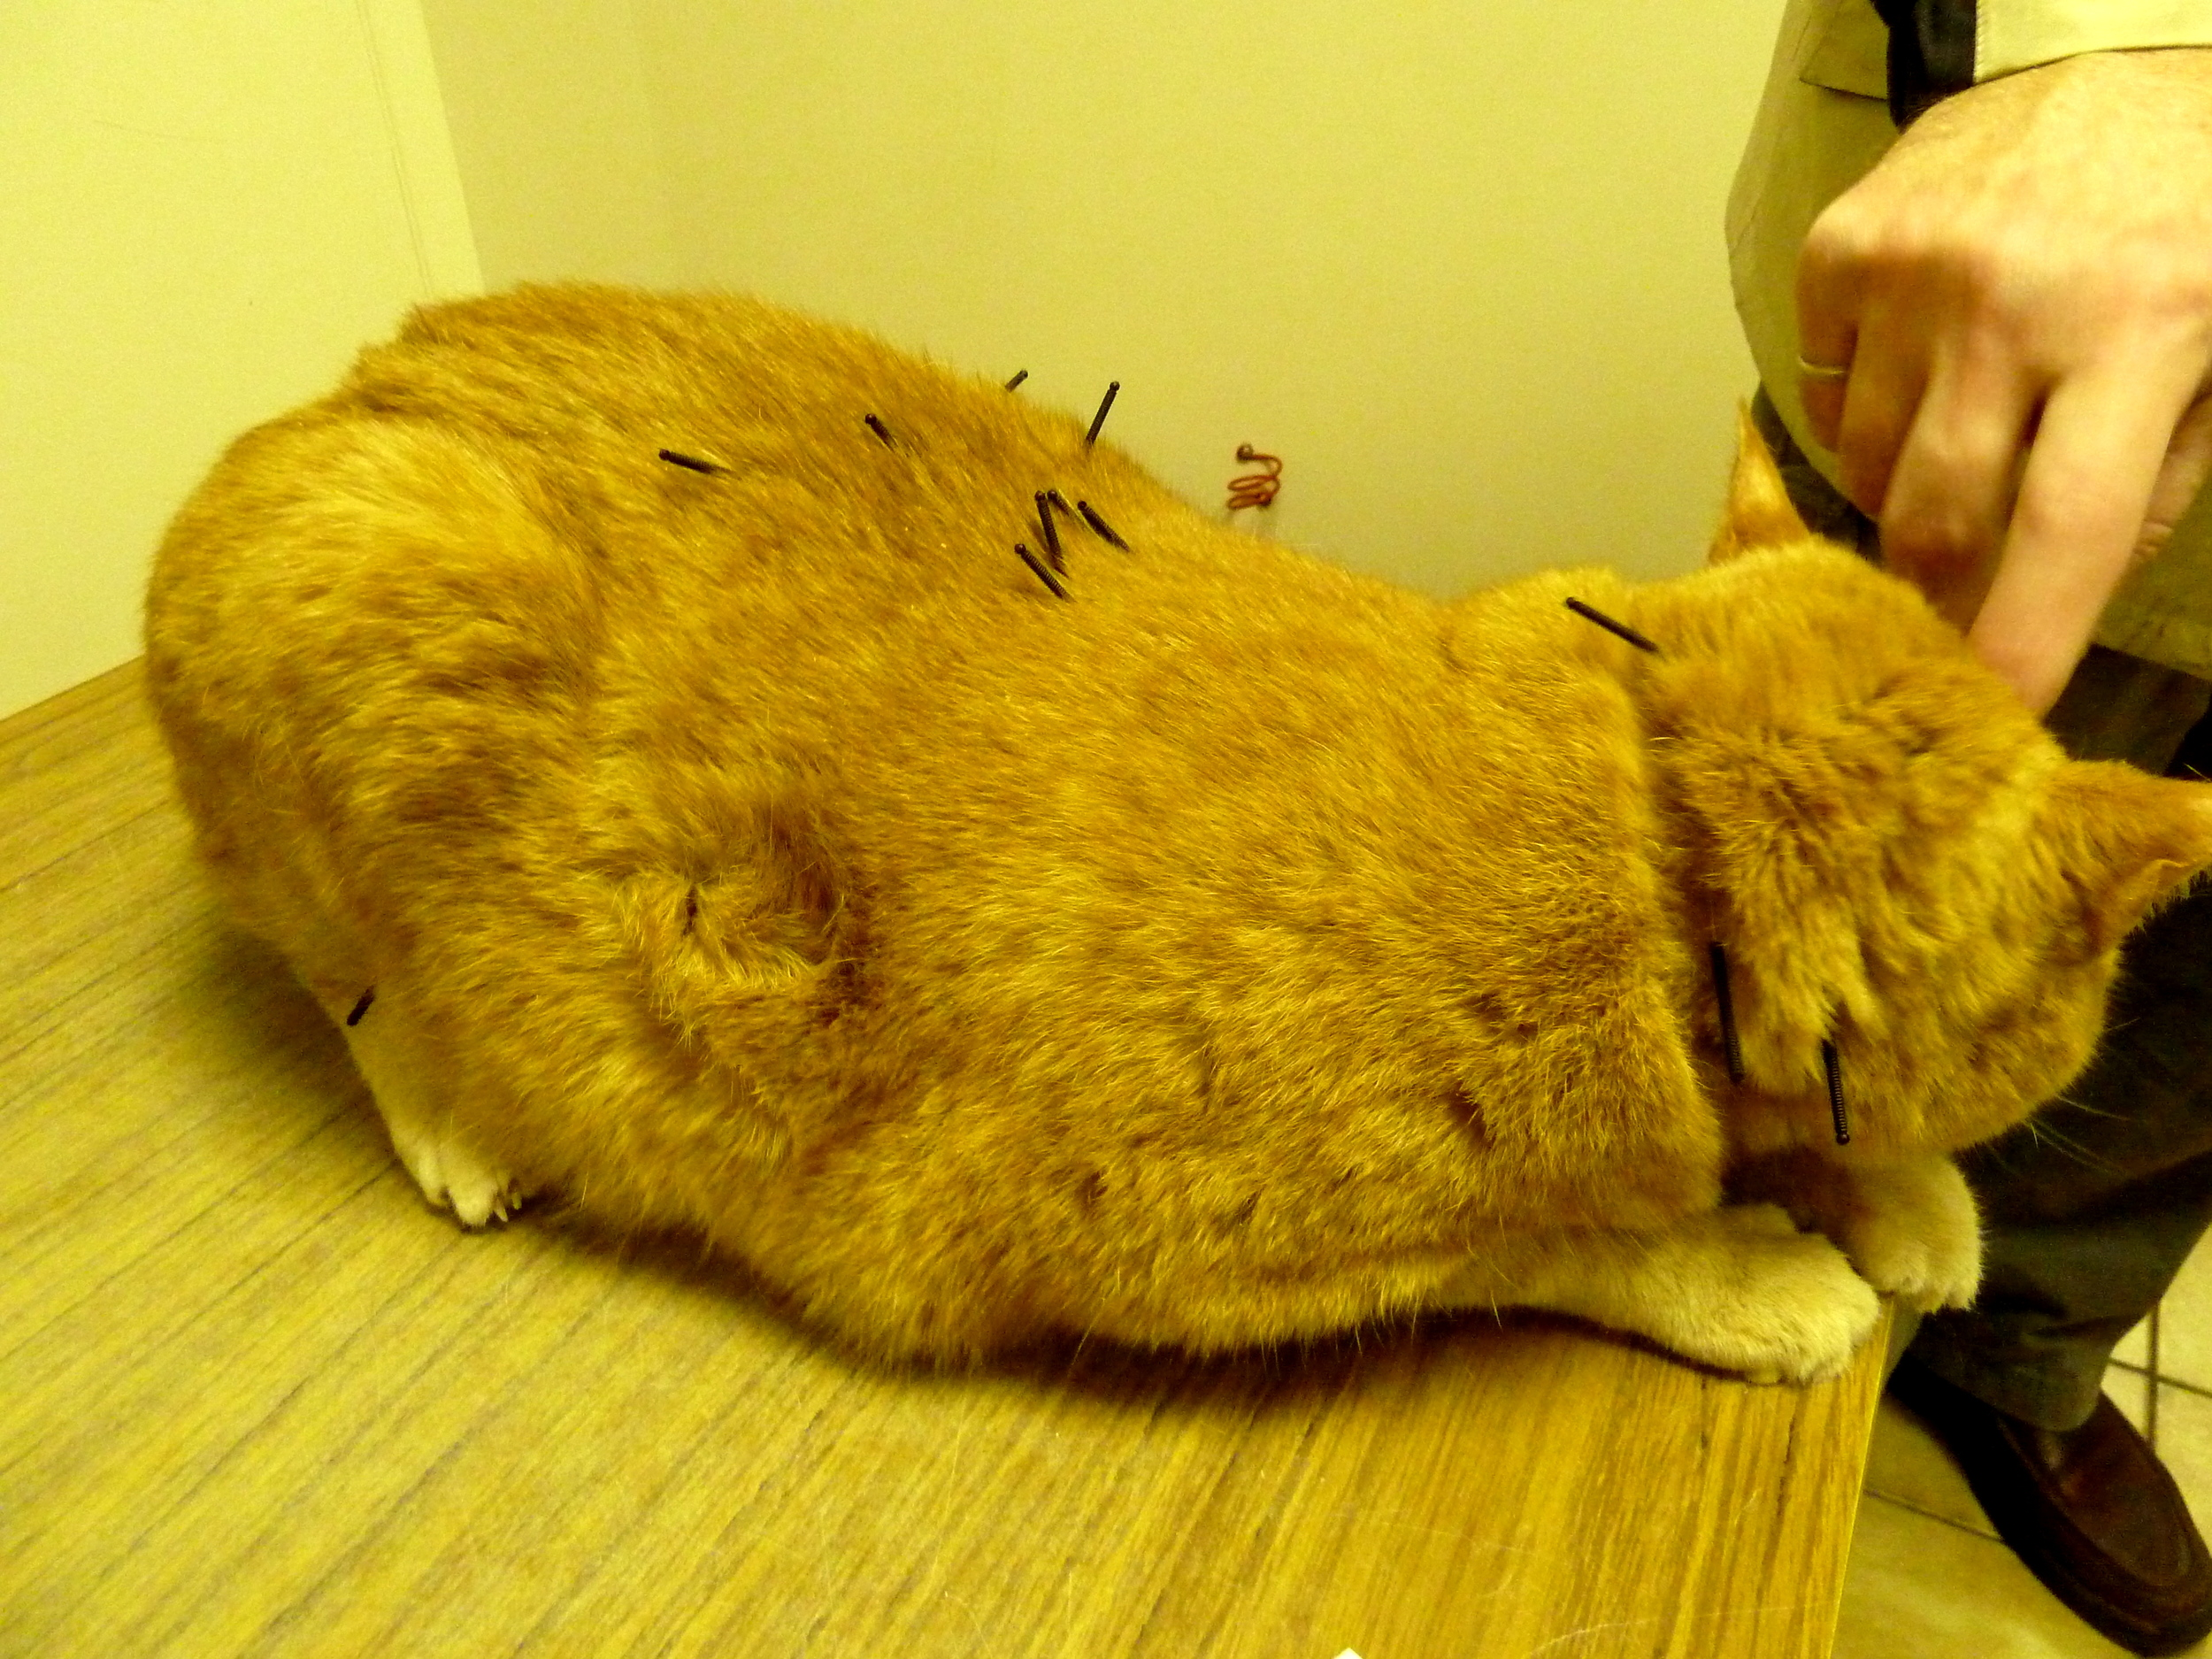 Cheddar was a patient being treated for a psychological and neurological condition, and sits patiently during heracupuncture treatment.